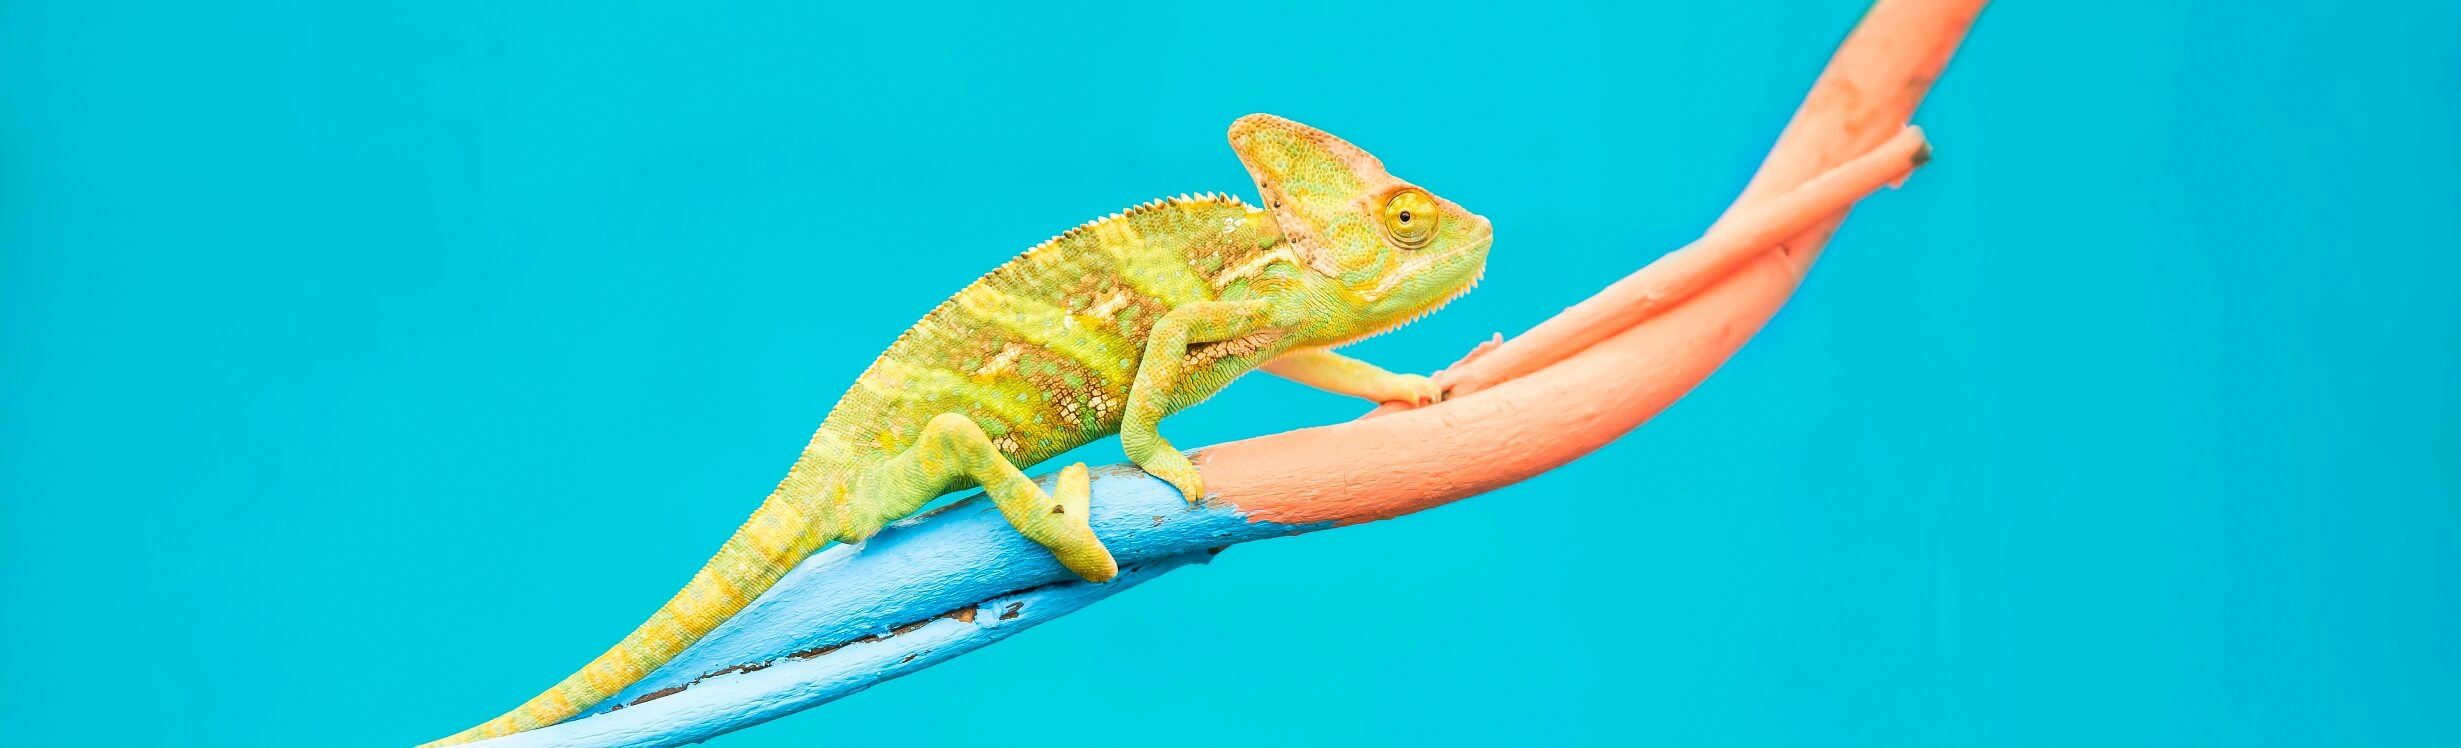 Abstract animal background, Agamidae animal wildlife, The cute chameleon is change two color on the tree.